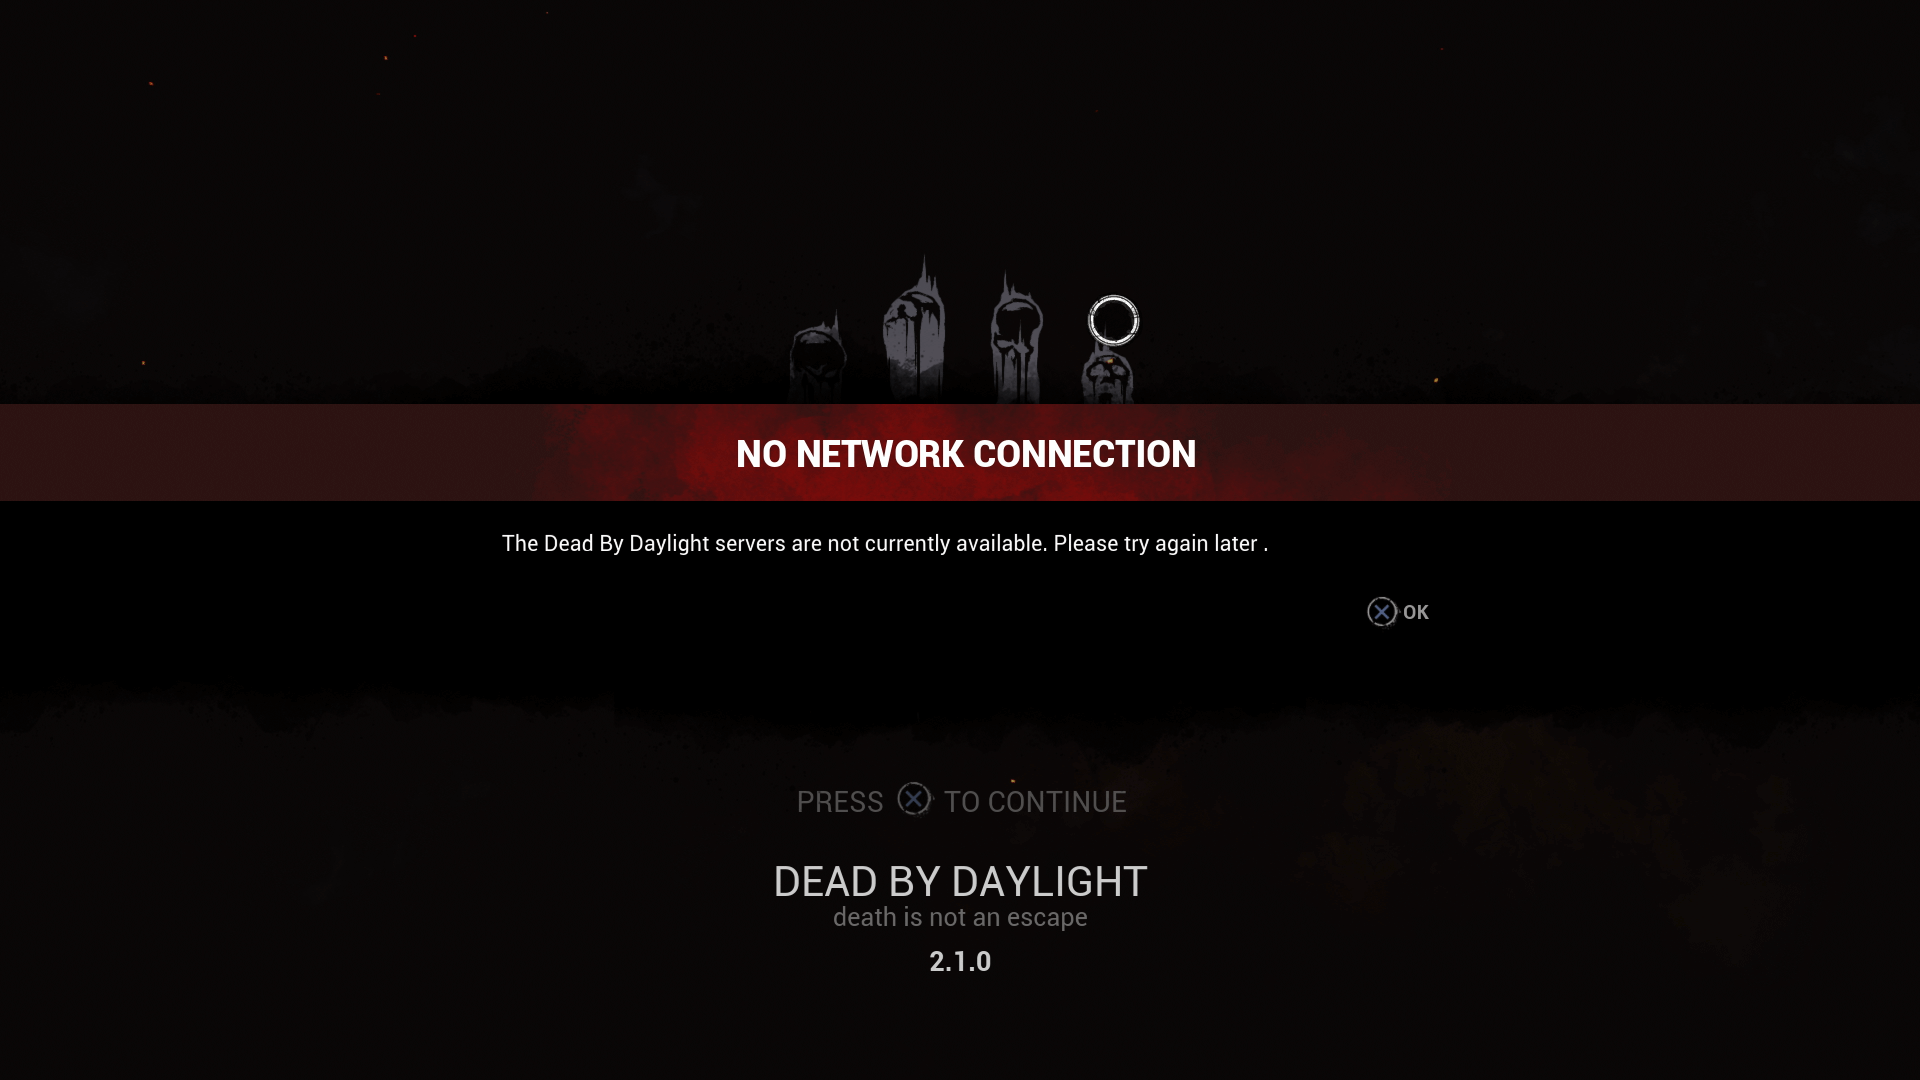 Dead by Daylight Server Issues